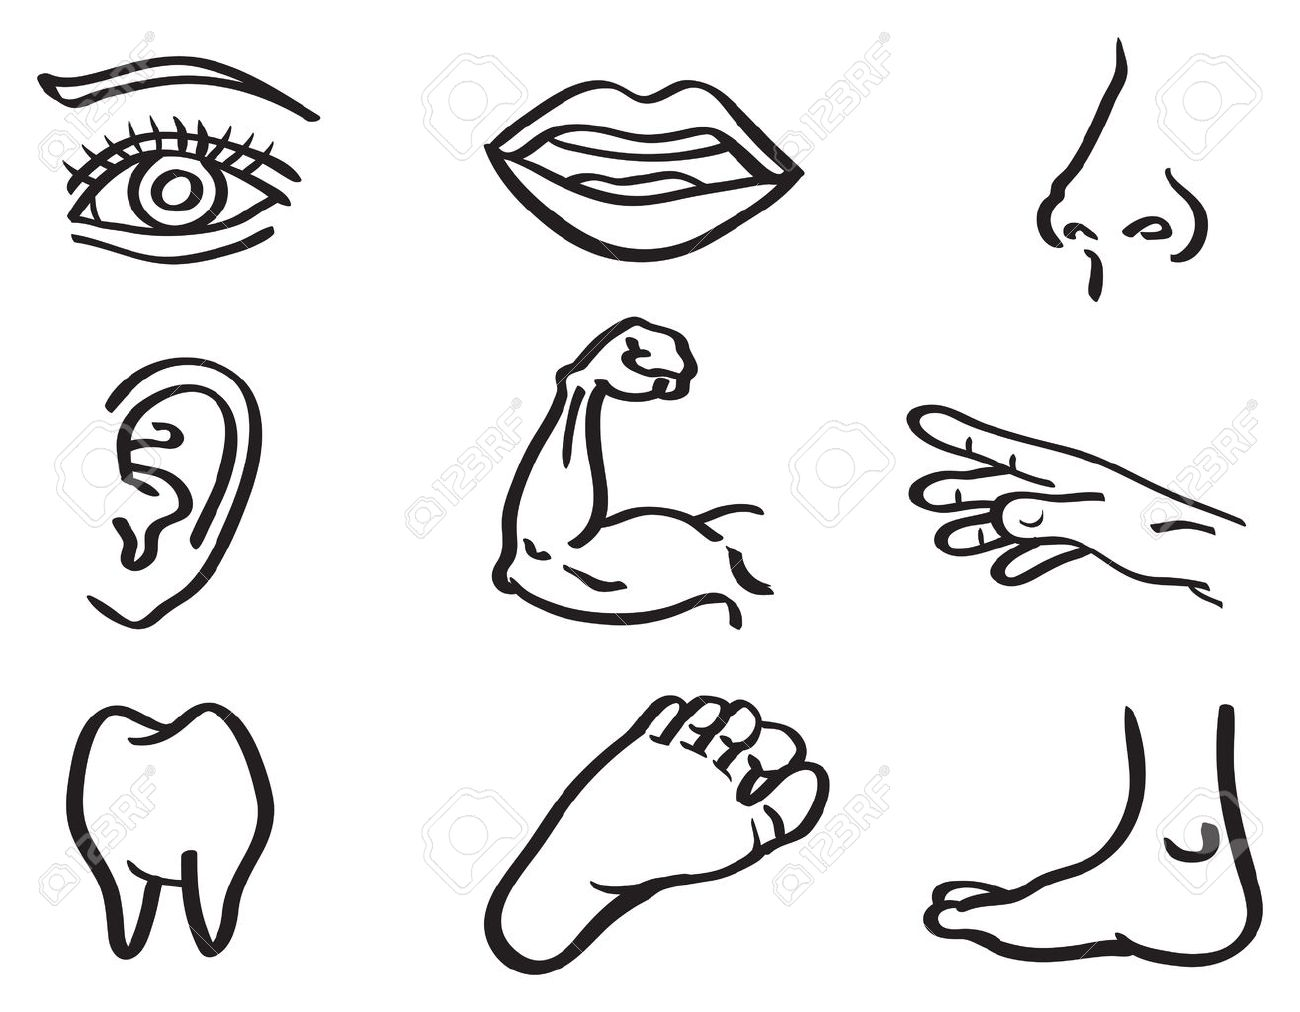 1300x1012 Vector Illustration Of Human Body Parts, Eye, Mouth, Nose, Ear